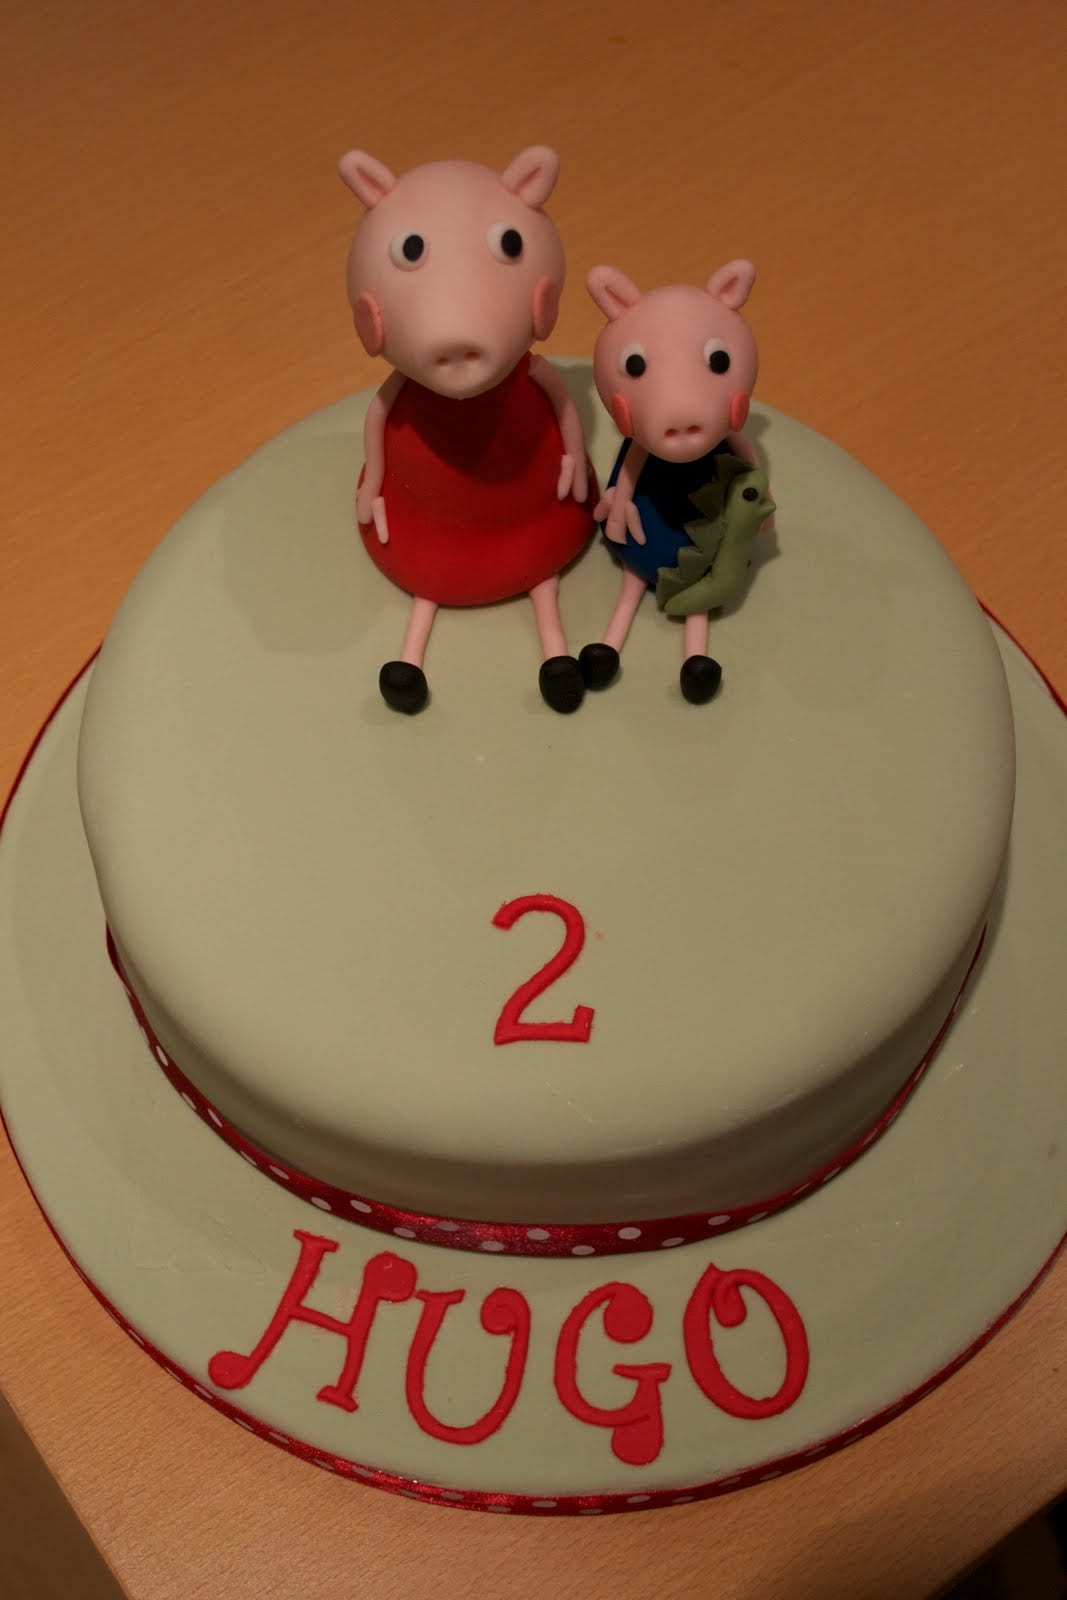 Peppa Pig Cake – Finished it Friday